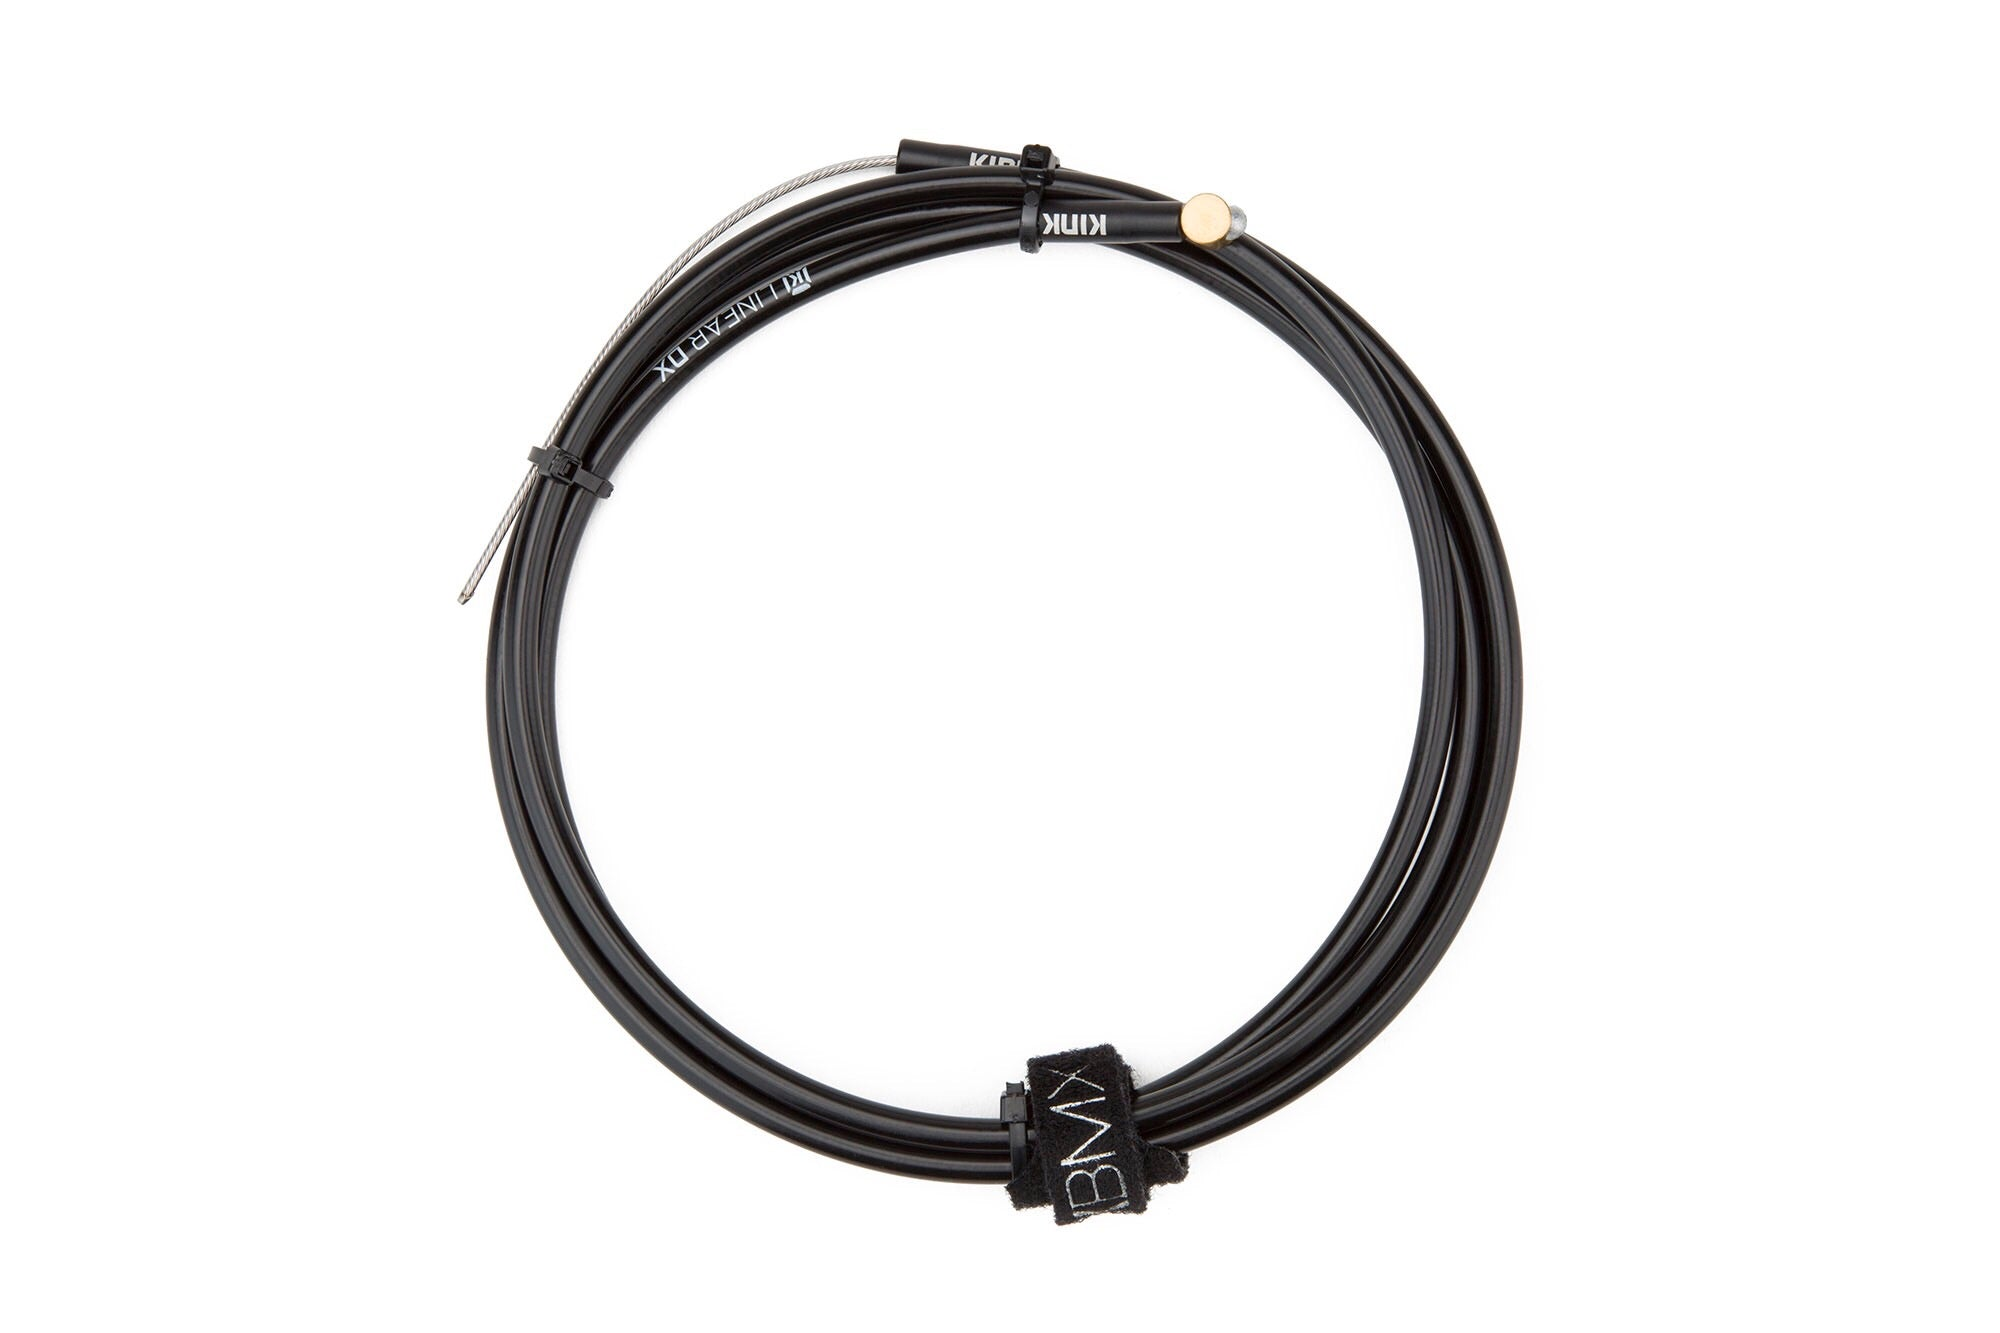 Kink Linear DX Bremskabel / Brake Cable Black